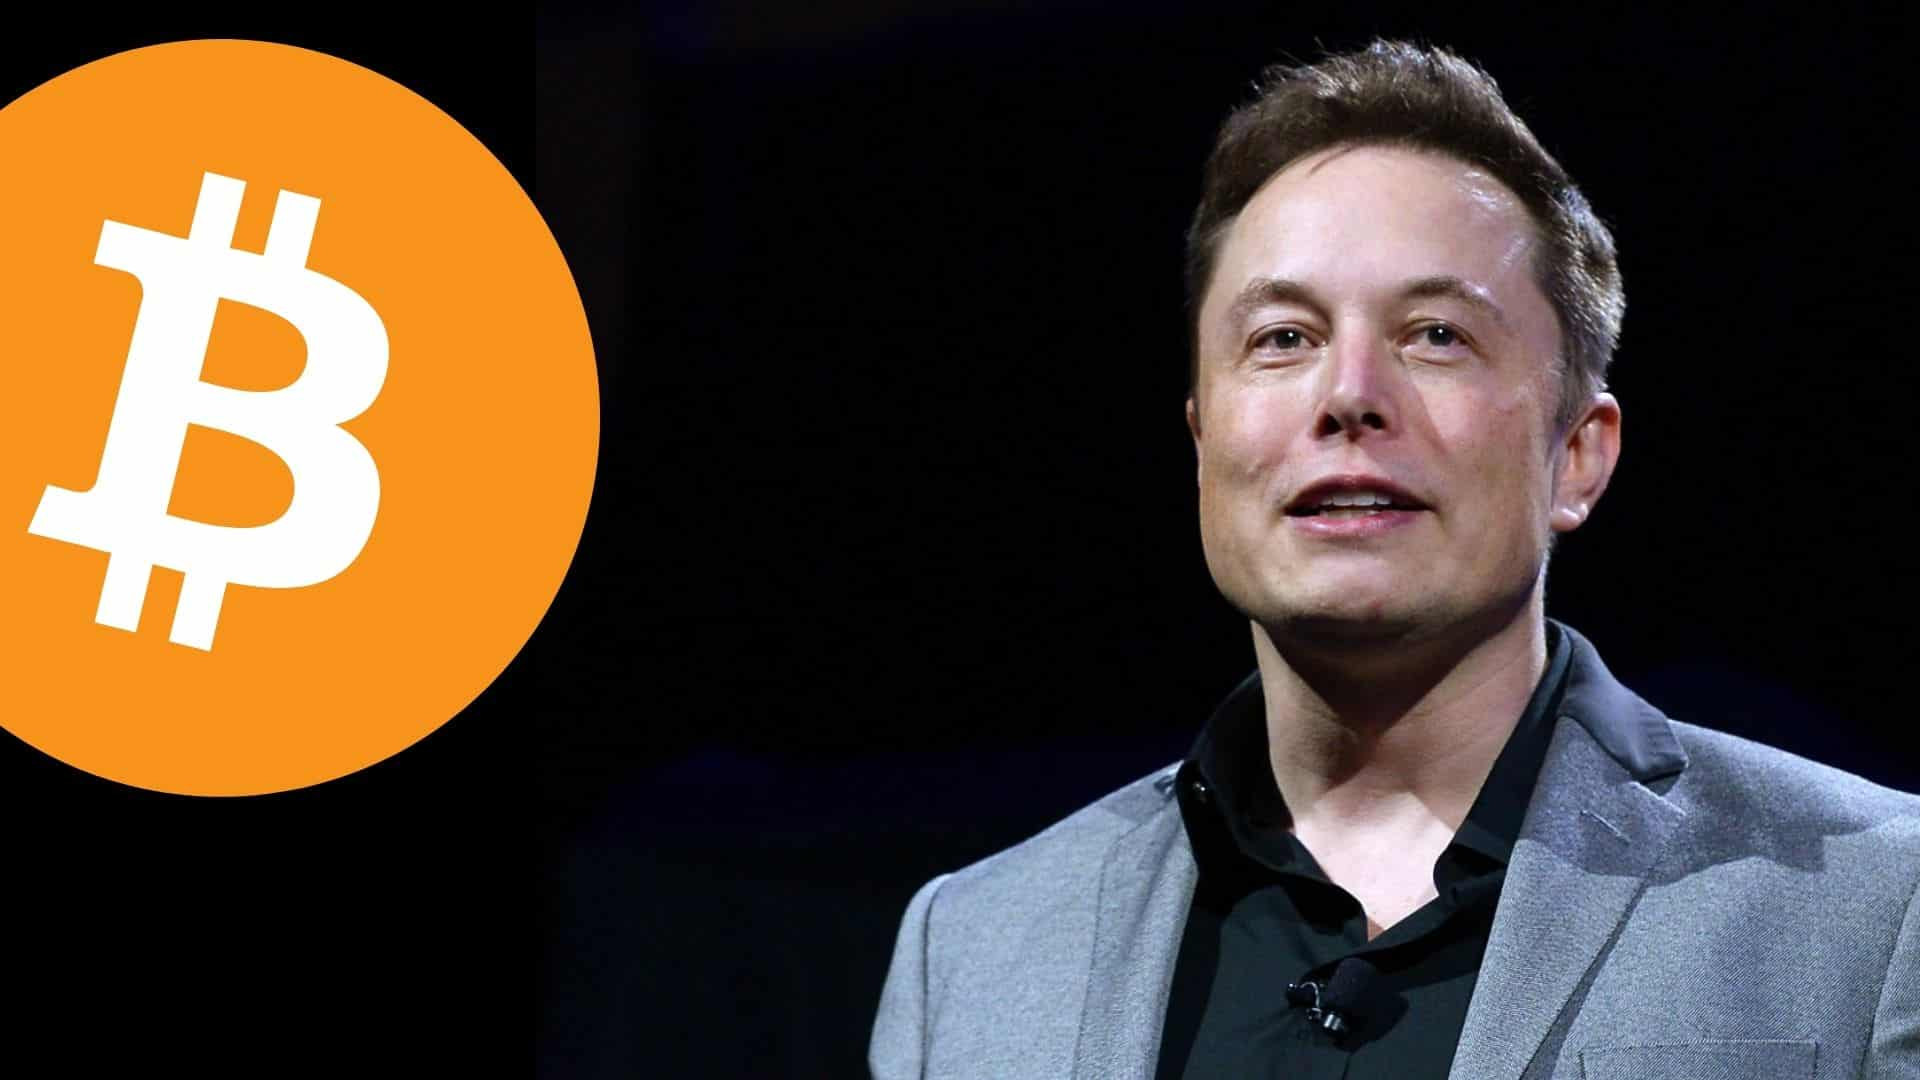 Why does Elon Musk say you can pay through Bitcoin to buy a Tesla?